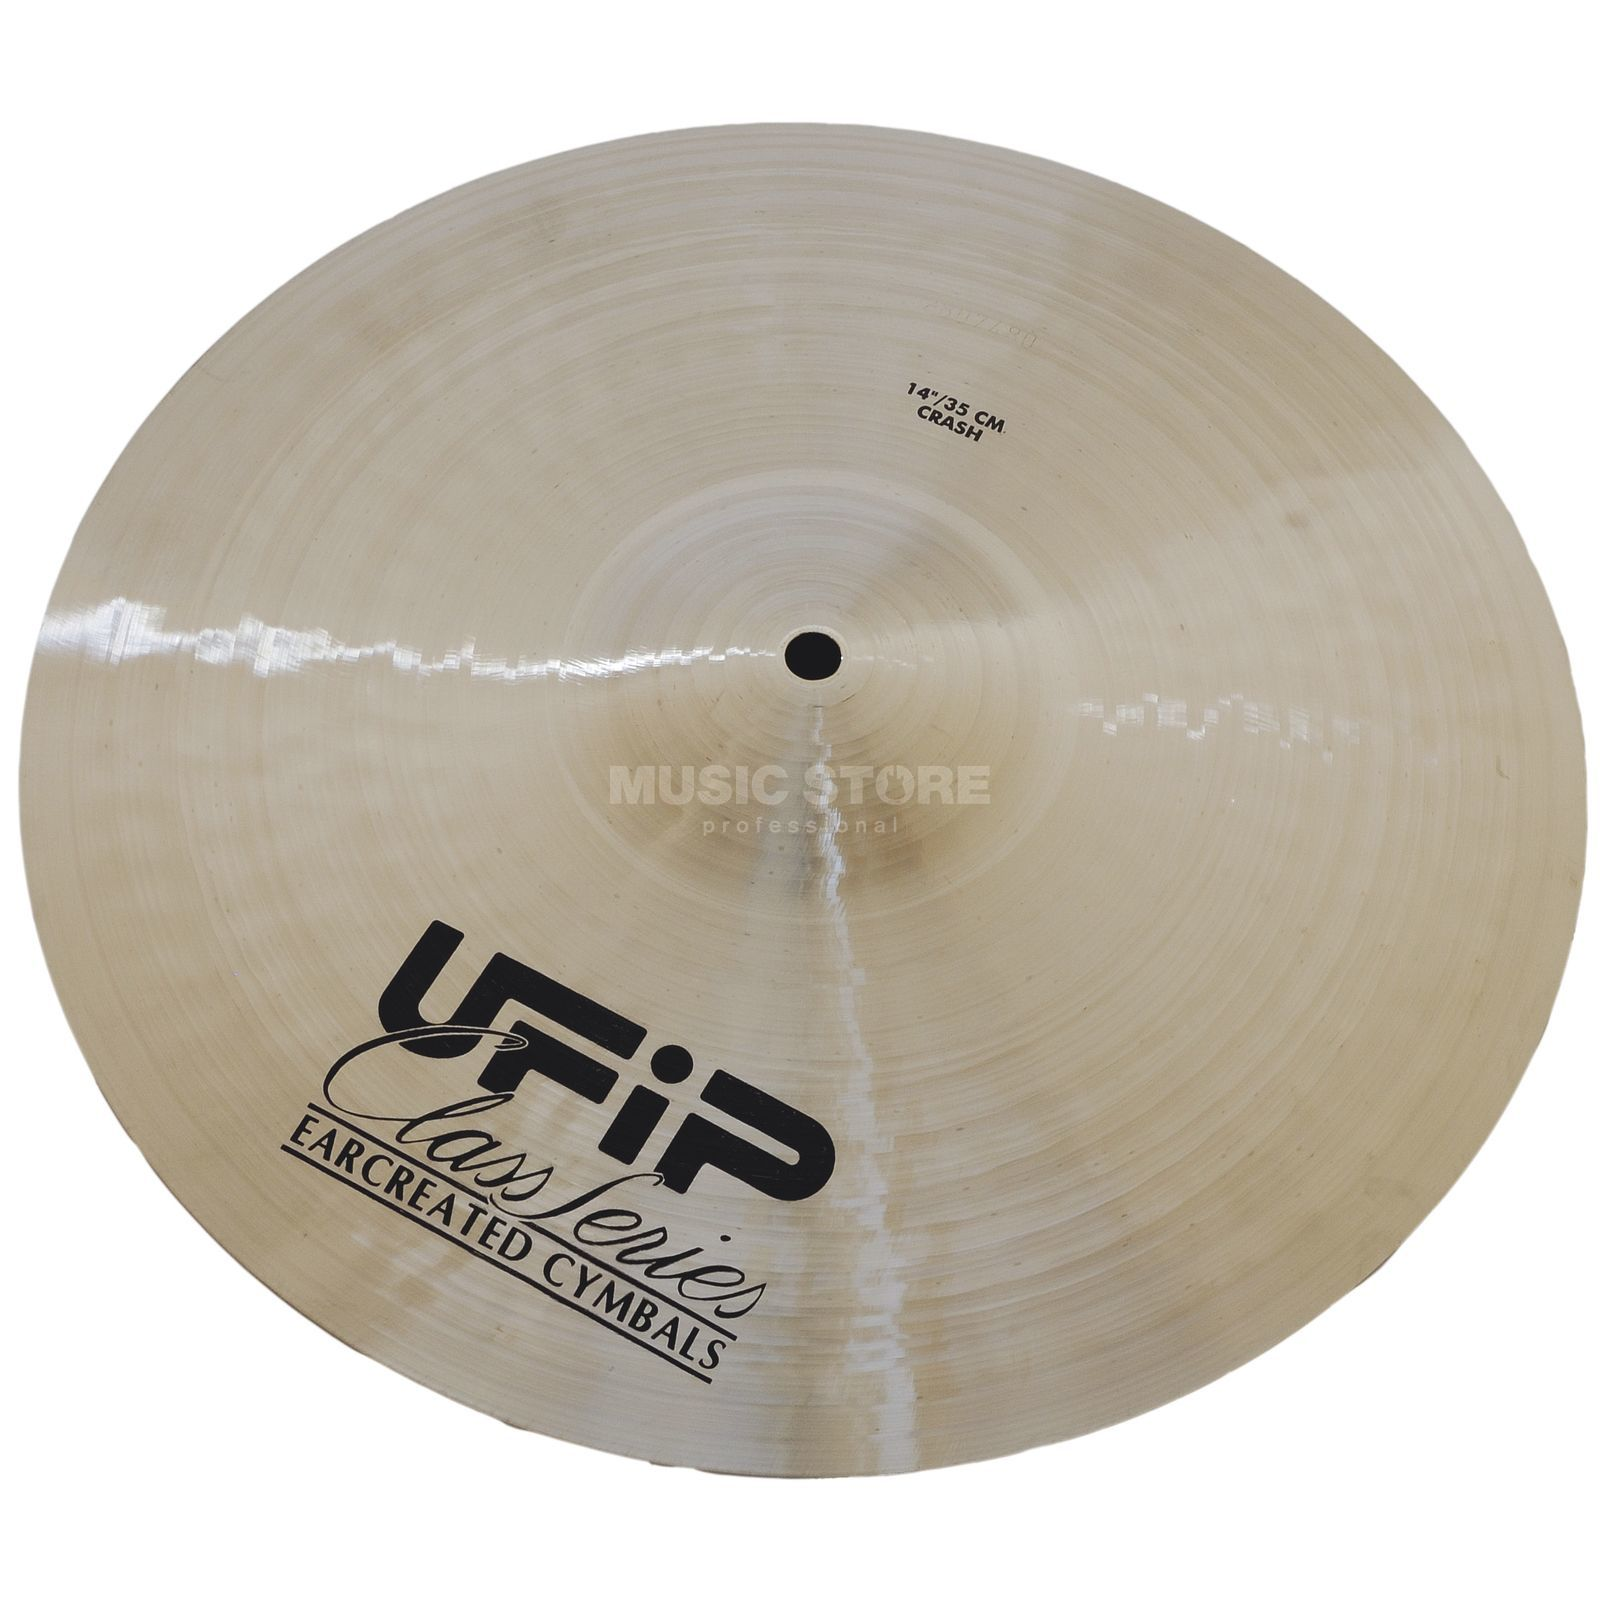 "Ufip Class Light Crash 16"", Natural Finish Produktbild"